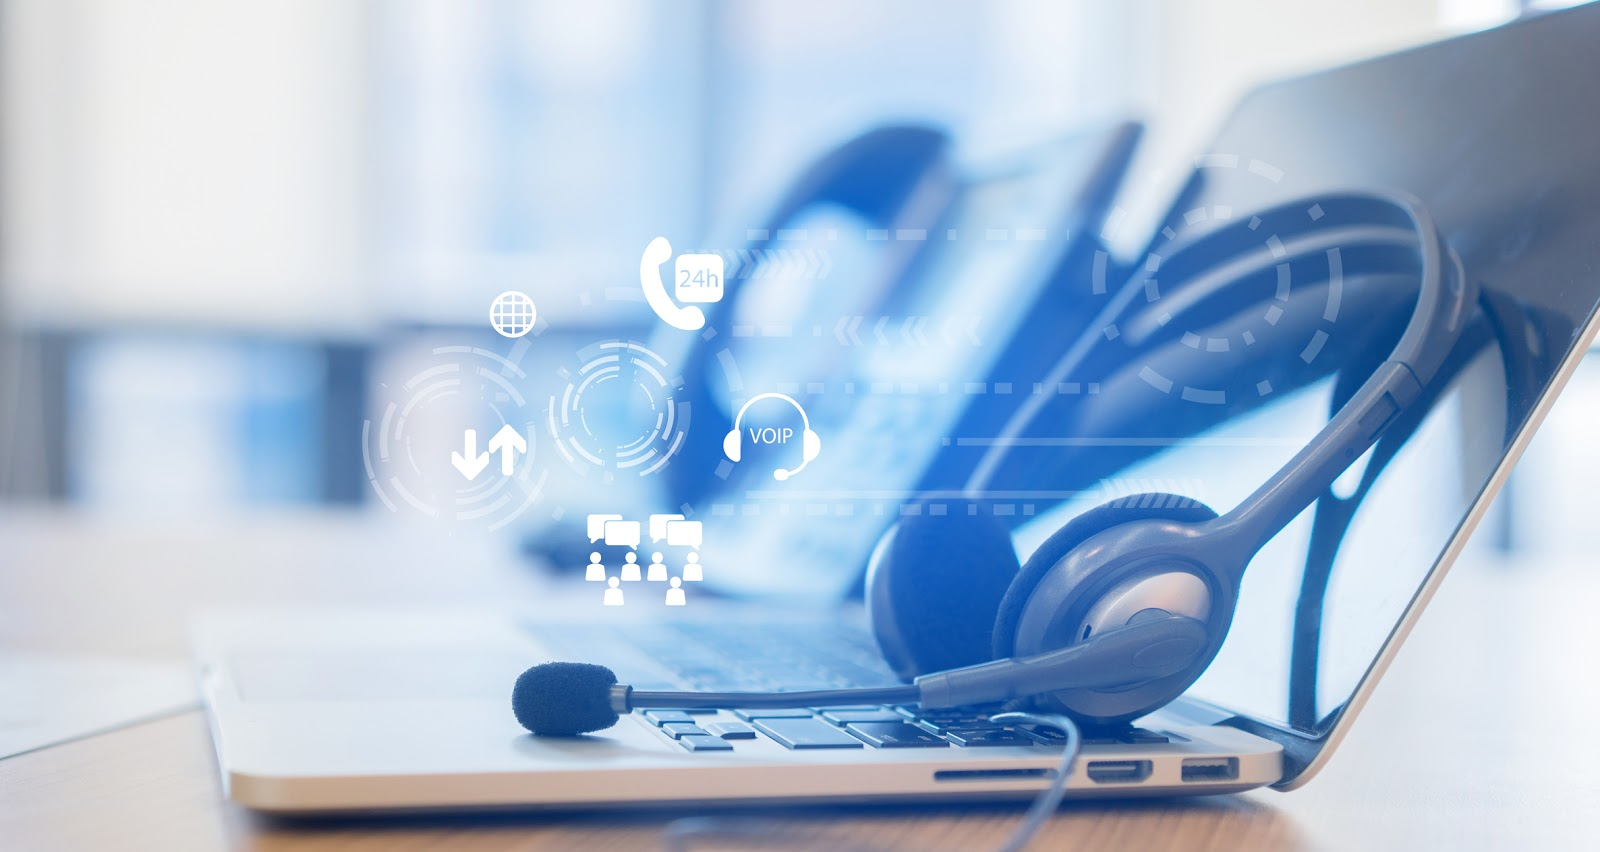 cloud voice - DTS Helps Companies Transition From Old Phone Systems That Hindered Remote Worker Performance